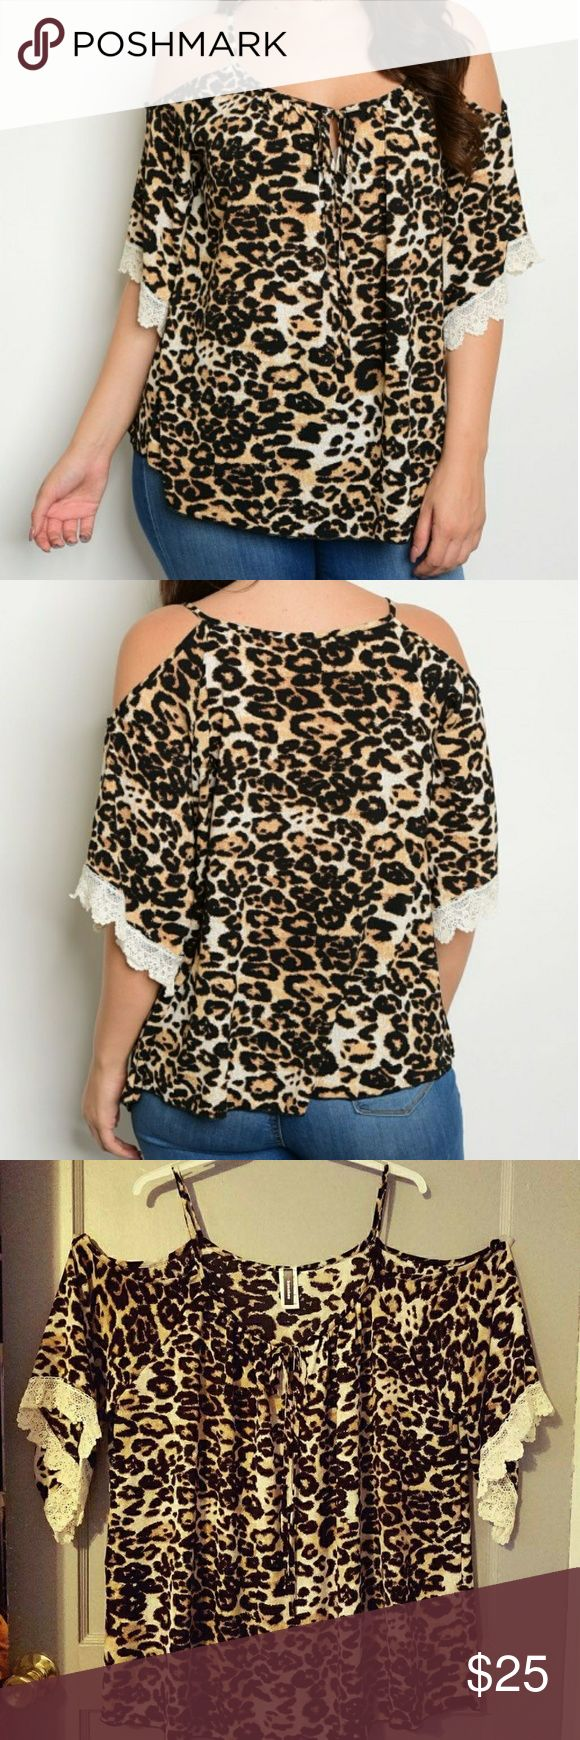 """Plus size cold shoulder animal print top Plus size cold shoulder animal print top Plus Size Scoop Neckline Cold Shoulder 3/4 Flutter Sleeve Animal Print Top, With Lace Detail.   98% polyester 2% spandex 1x underarm to underarm 25"""" underarm to hem 18"""" 2x underarm to underarm 26"""" underarm to hem 18"""" Tops"""